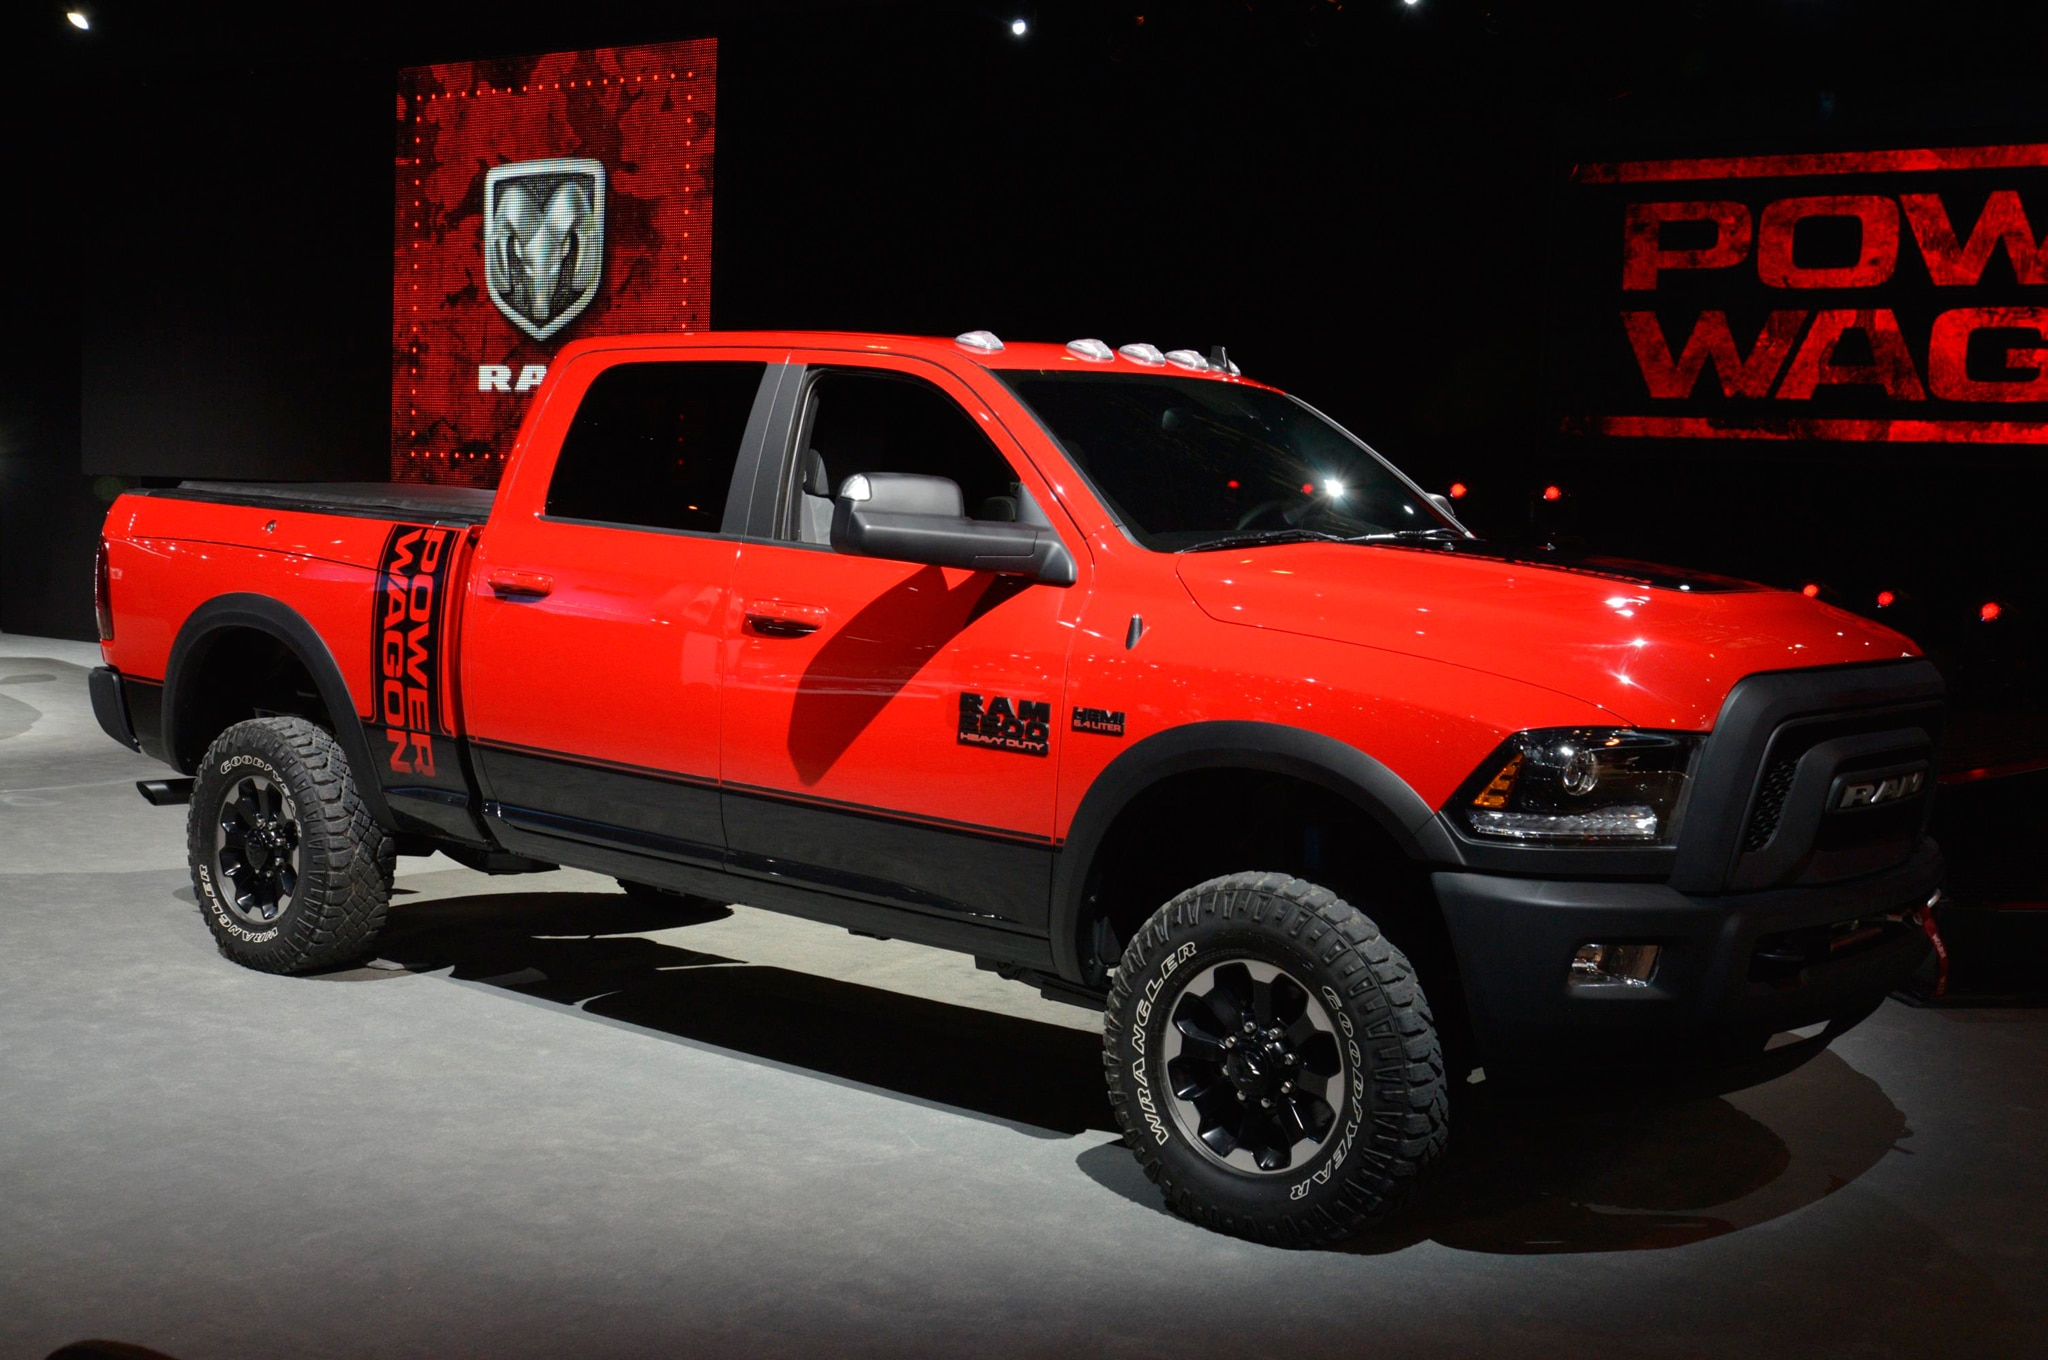 2017 ram 2500 power wagon adopts a rebel like face upgraded chassis. Black Bedroom Furniture Sets. Home Design Ideas